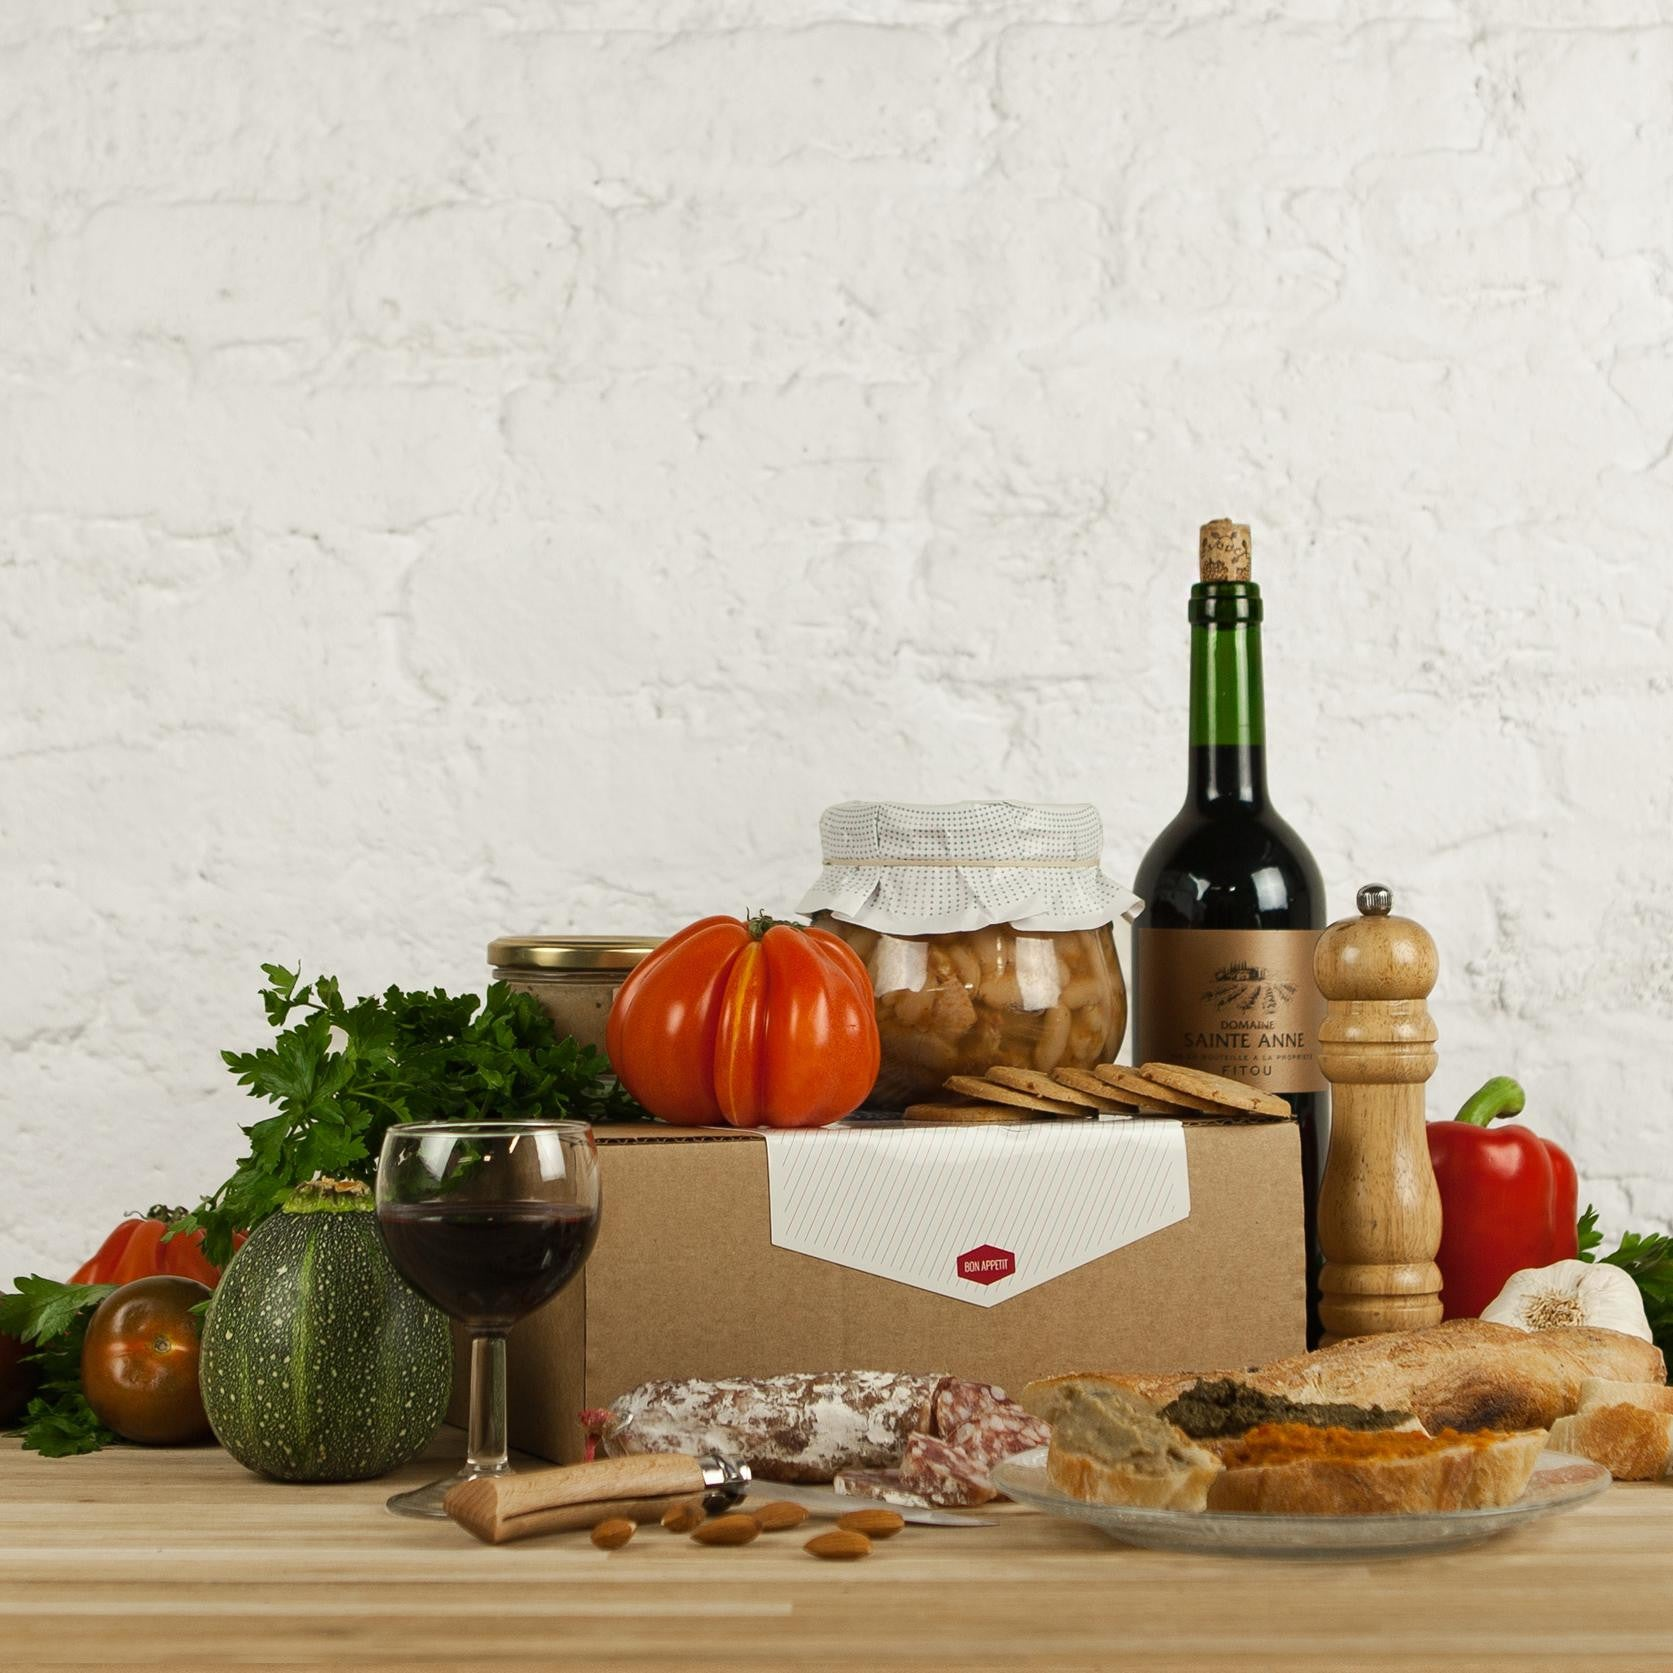 French Food Subscription Box